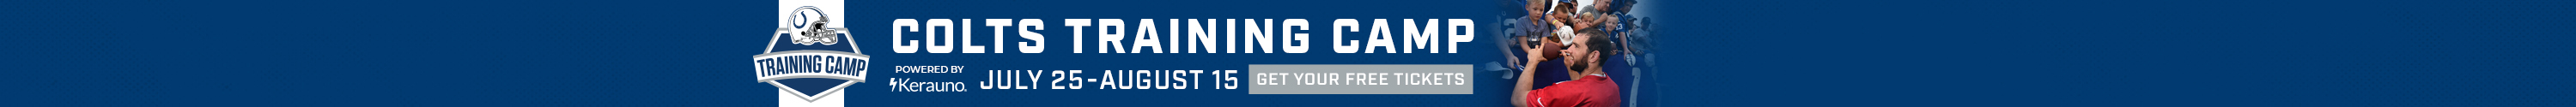 Click here to get your free tickets for Colts Training Camp today!